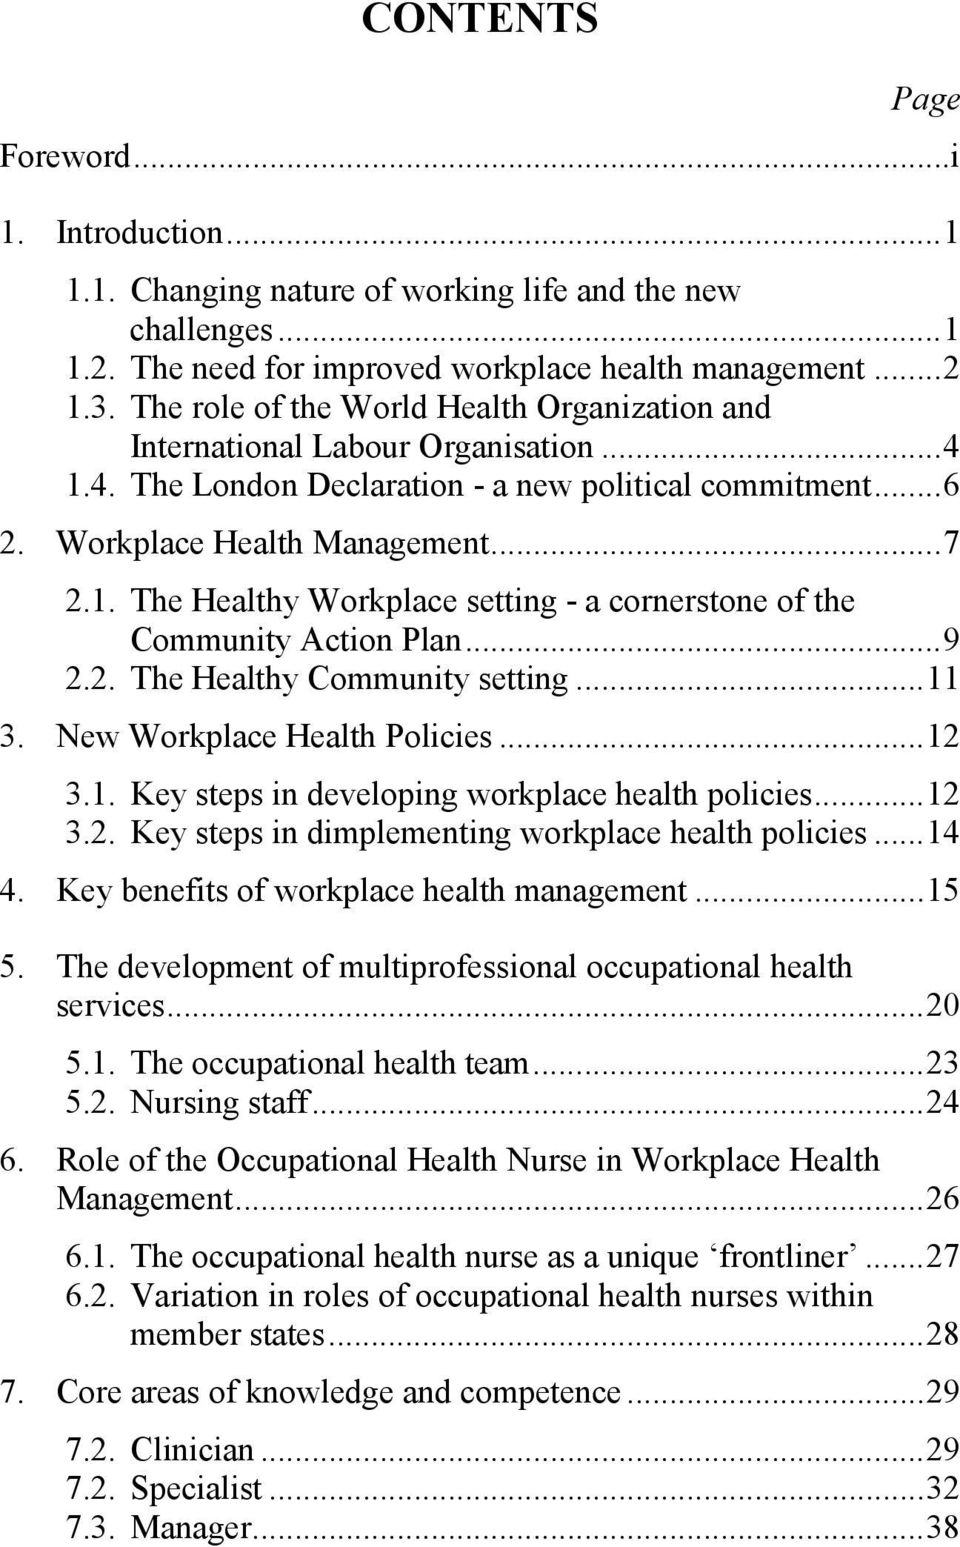 ..9 2.2. The Healthy Community setting...11 3. New Workplace Health Policies...12 3.1. Key steps in developing workplace health policies...12 3.2. Key steps in dimplementing workplace health policies.